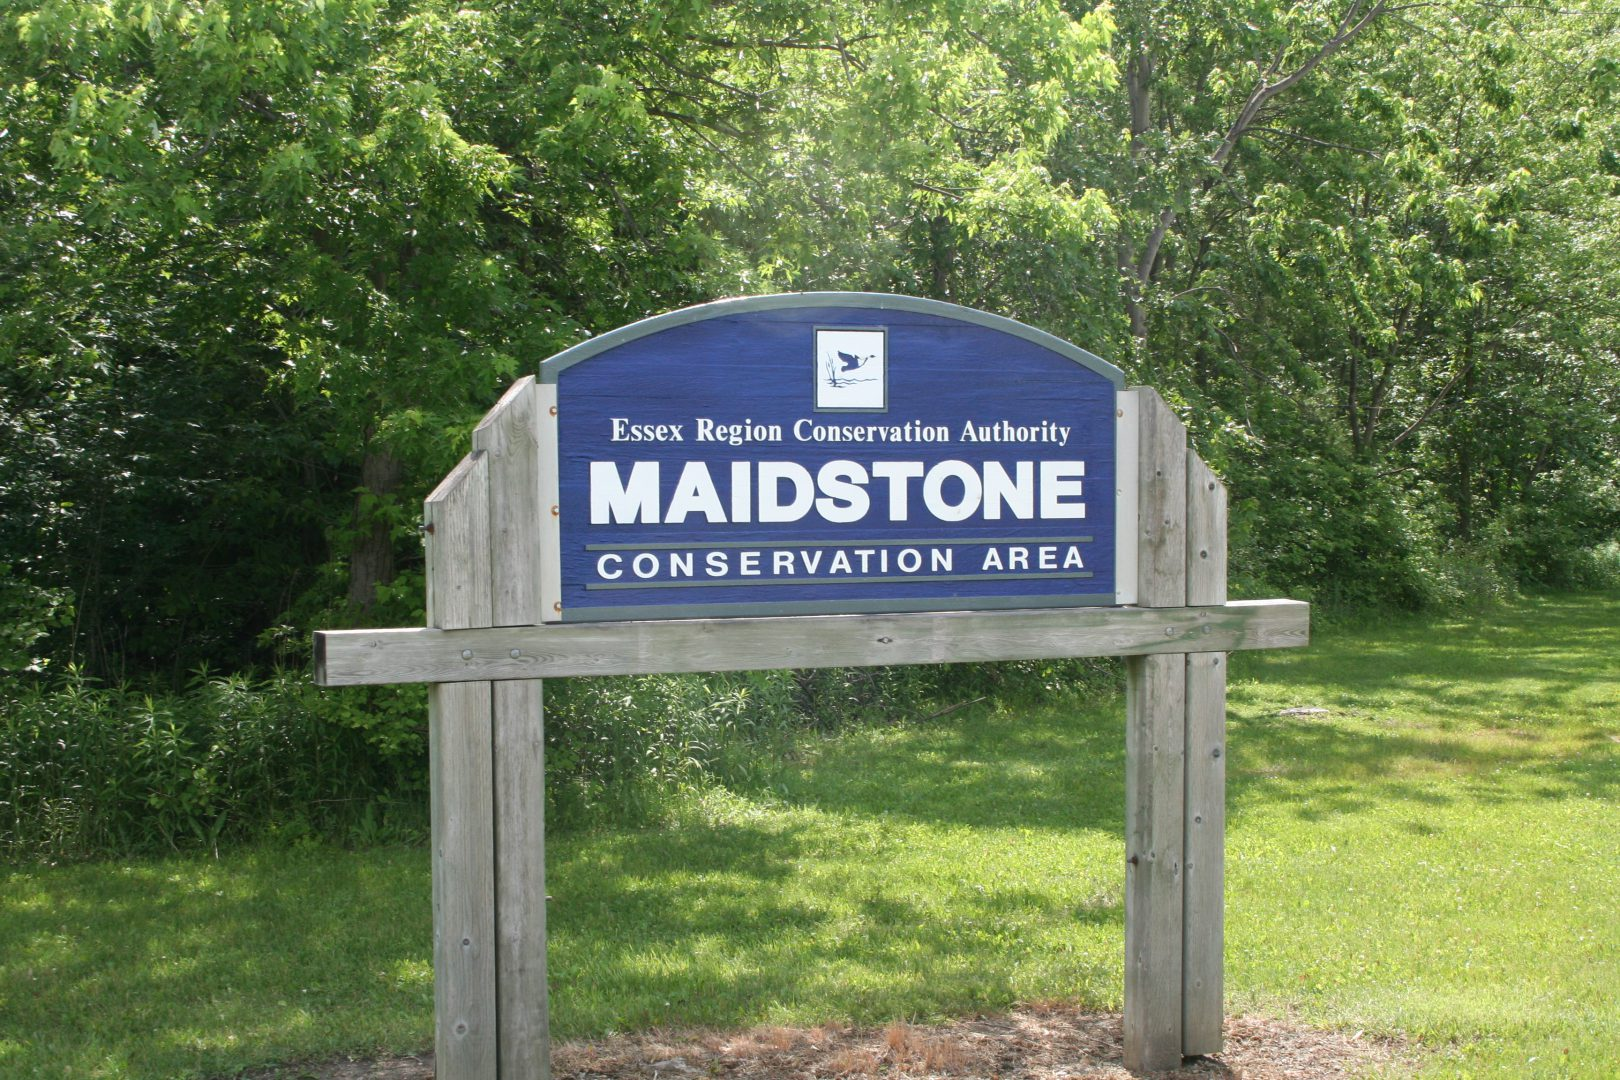 Maidstone Conservation Area entrance sign